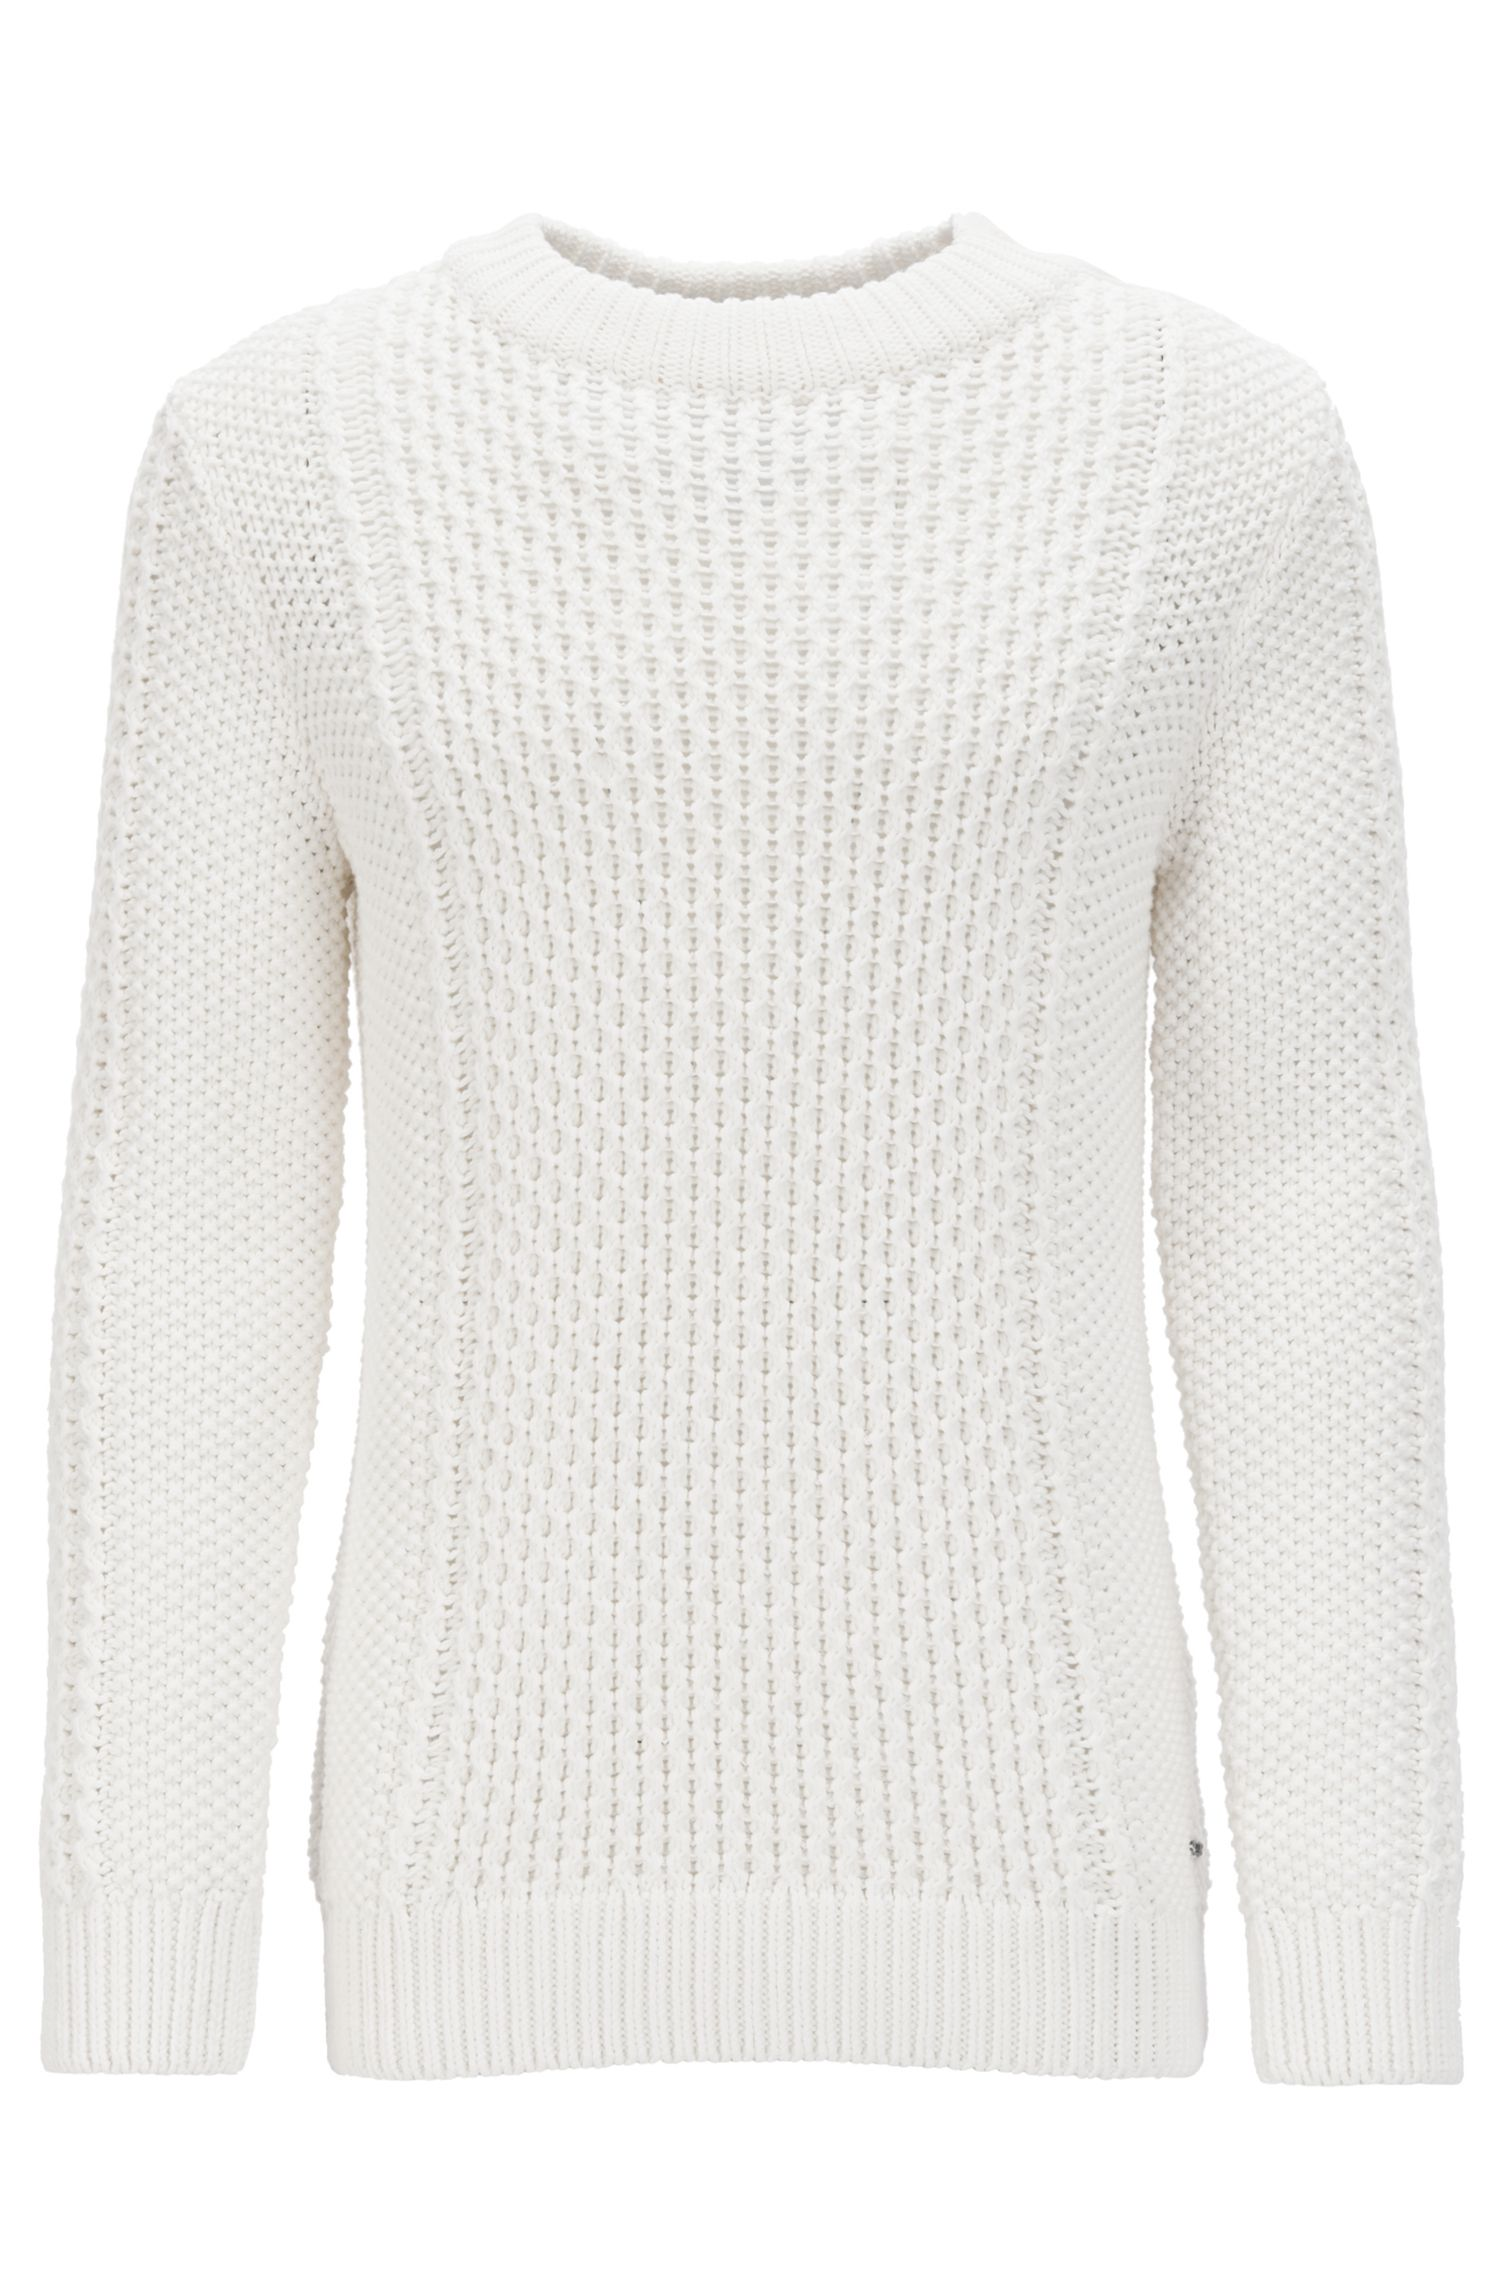 Cotton Blend Chunky Sweater | Delmonte